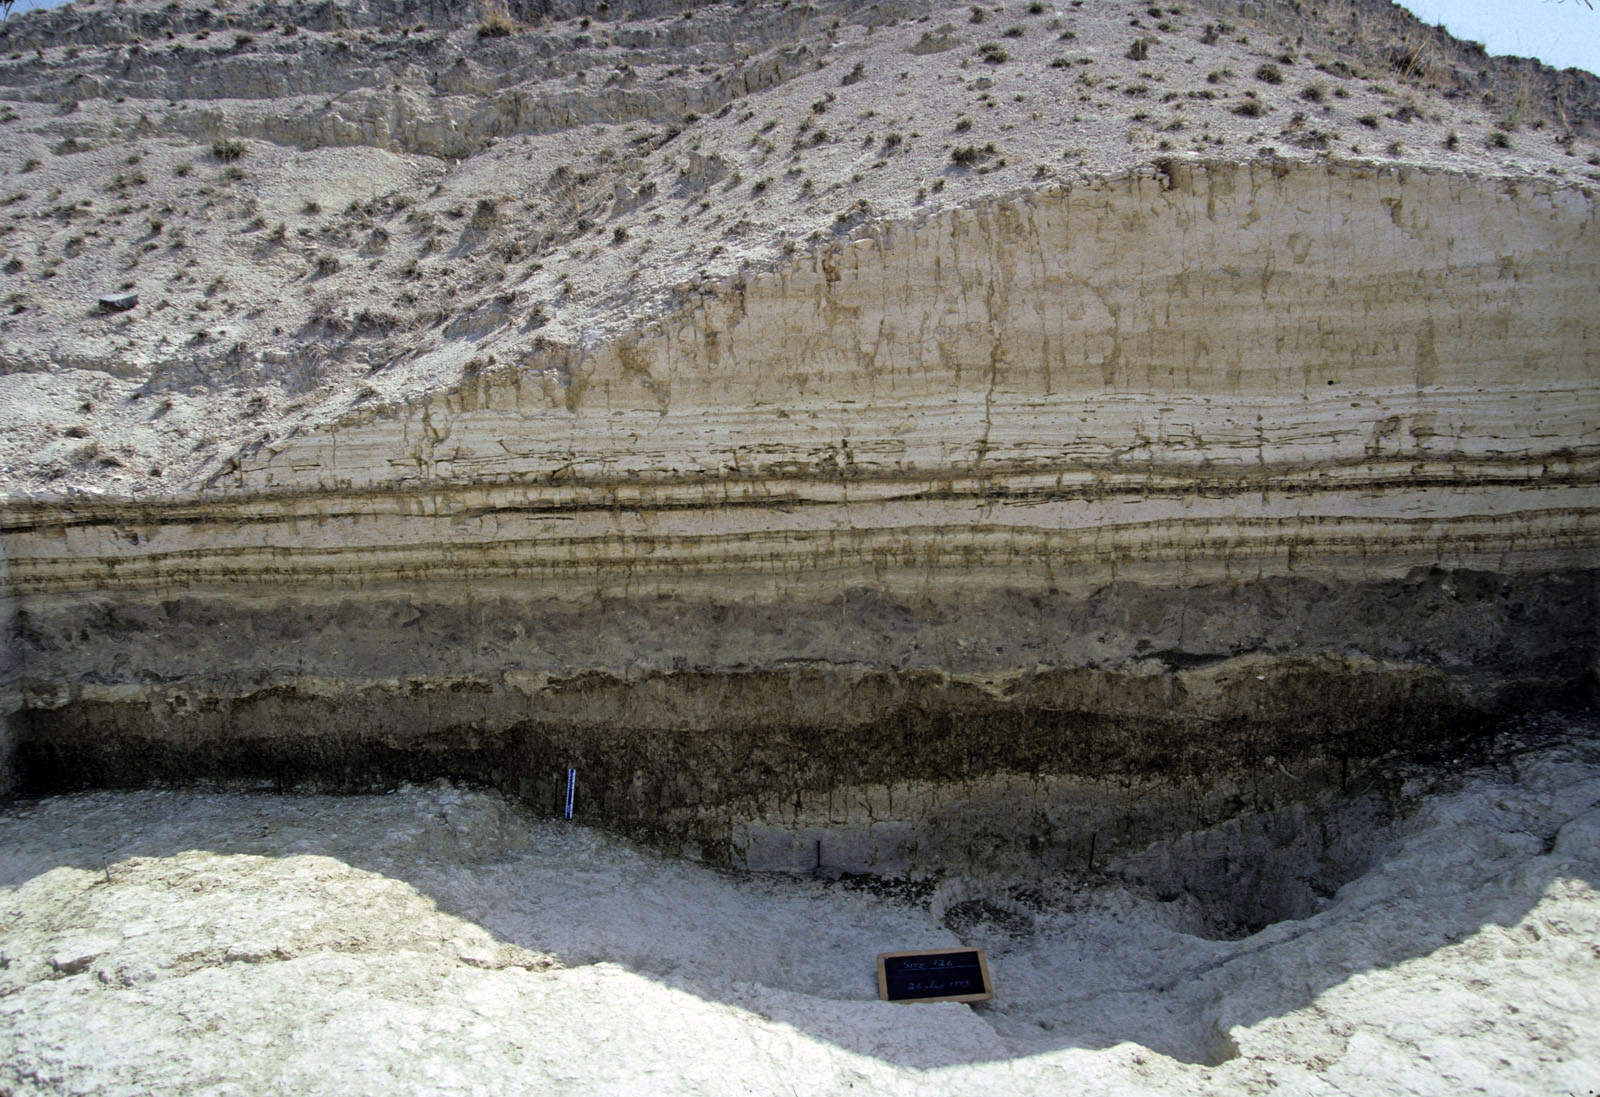 Upper Member 1 paleosol (thick, lower brown layer), which can be traced for several kilometers, provides chemical evidence of a broad grassland 990,000 years ago. Image courtesy of Chip Clark, Smithsonian Institution.